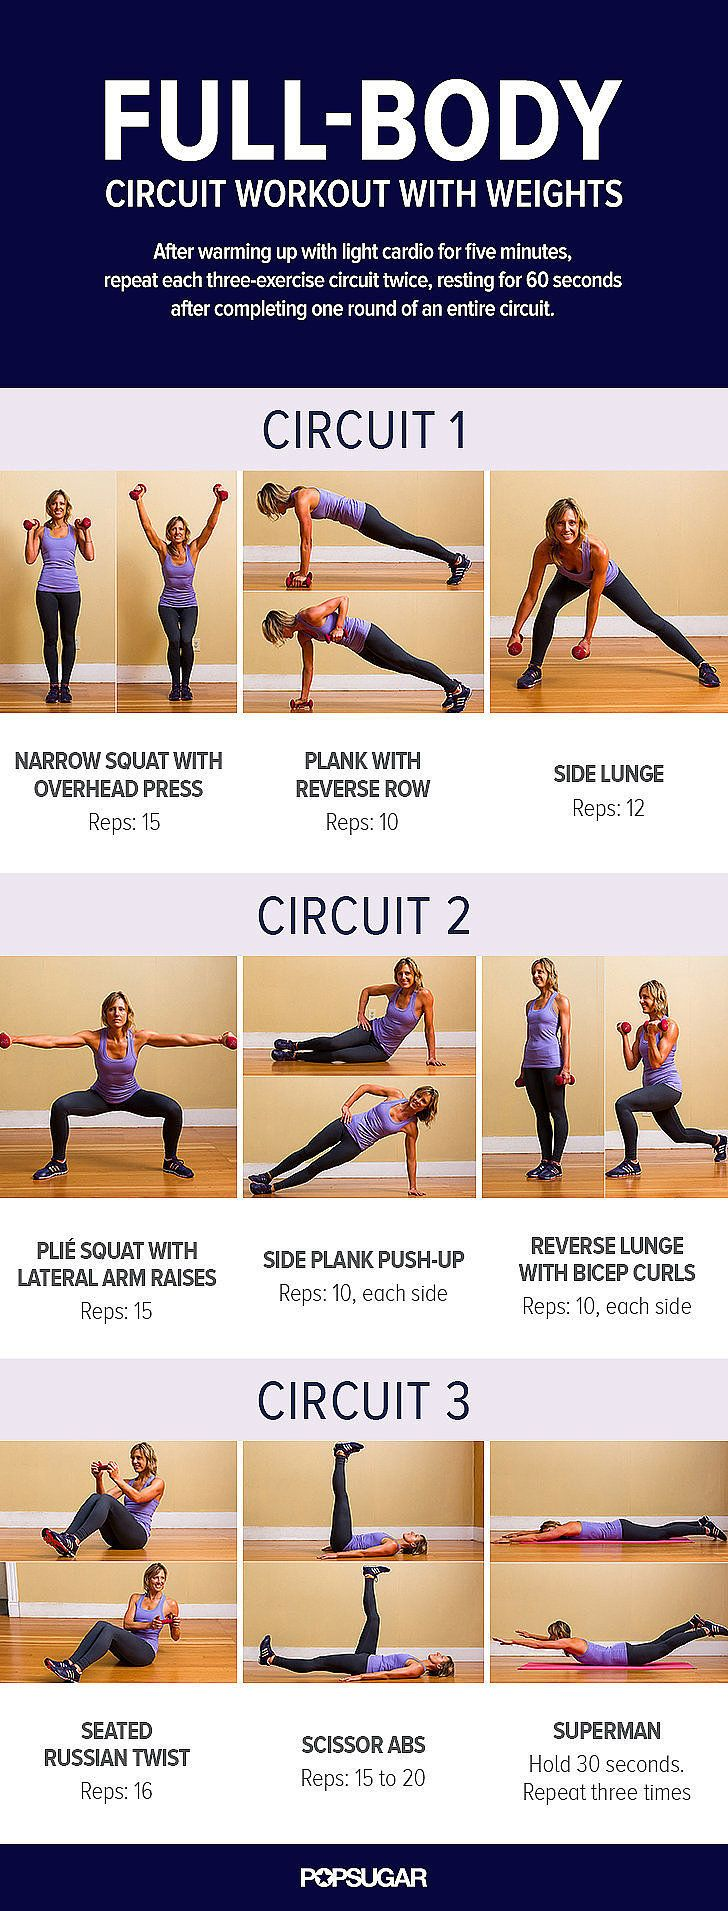 Full-Body Circuit Workout With Weights